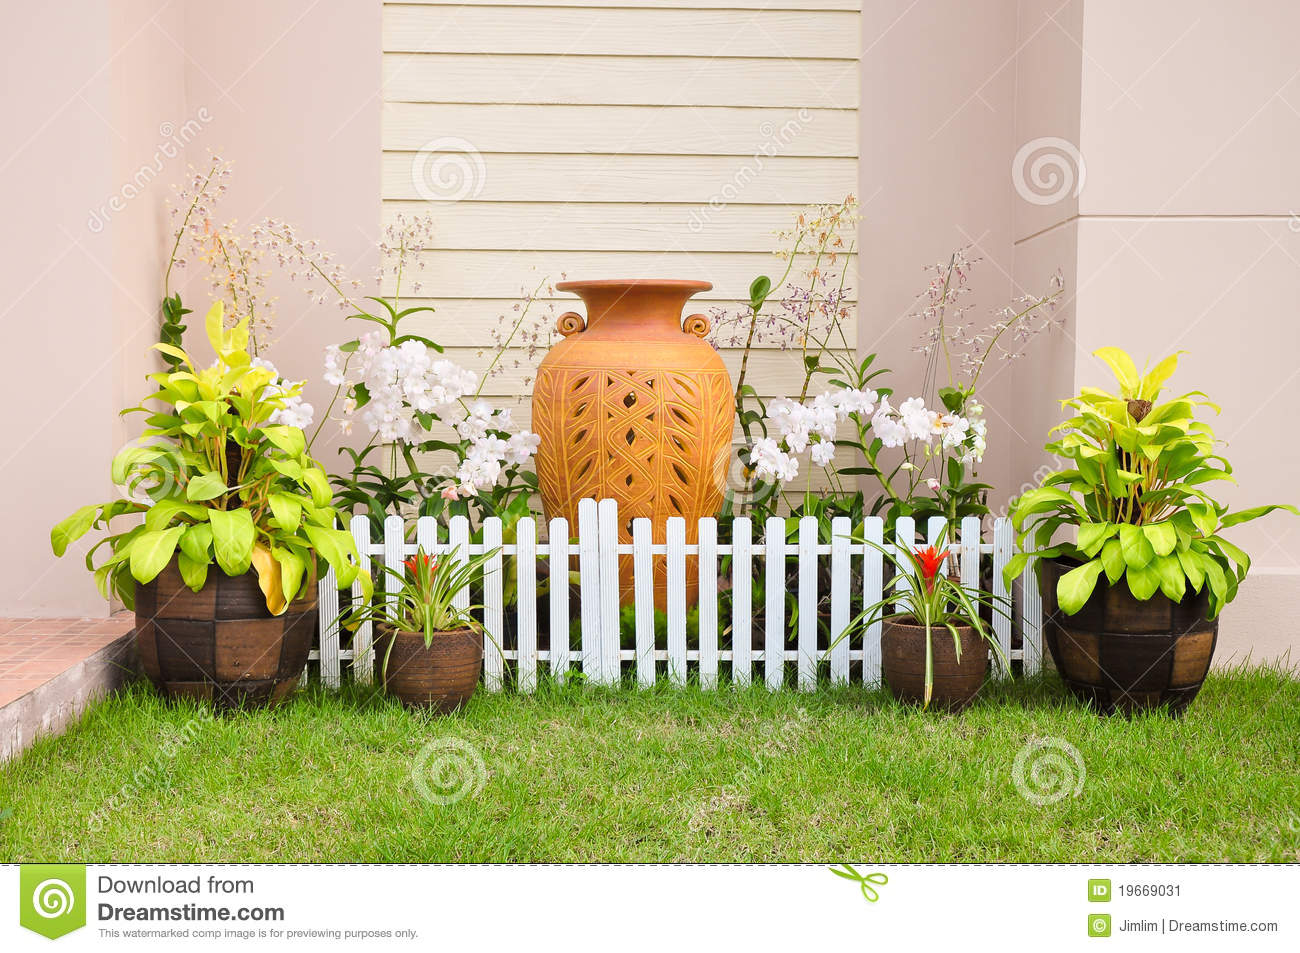 Small house fence small home garden stock image image for Small home garden